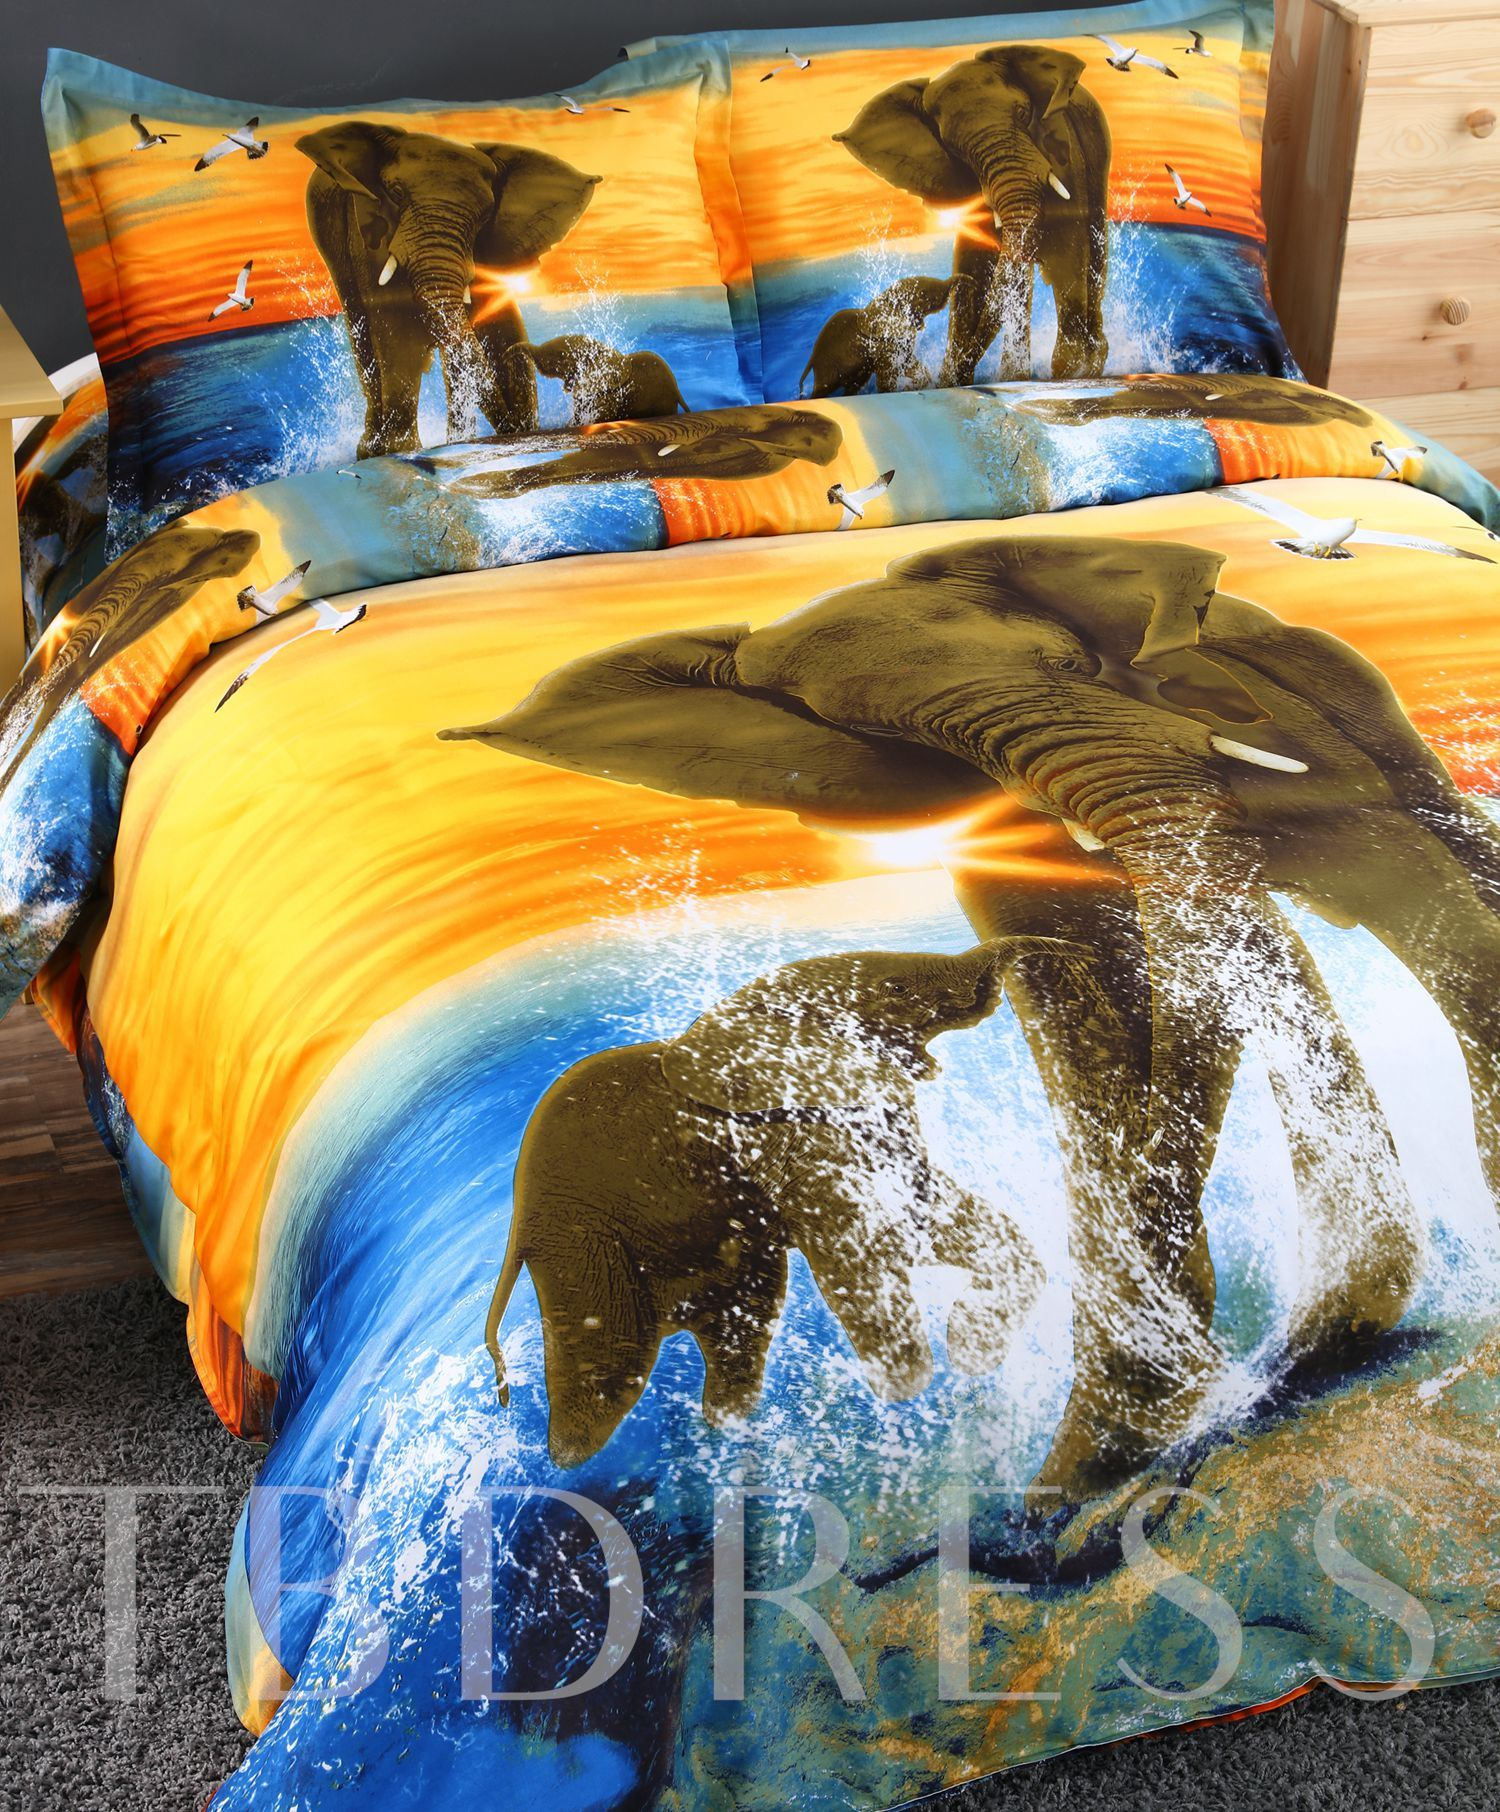 Elephant and Cub in Water Printed Cotton 3D 4-Piece Bedding Sets/Duvet Covers